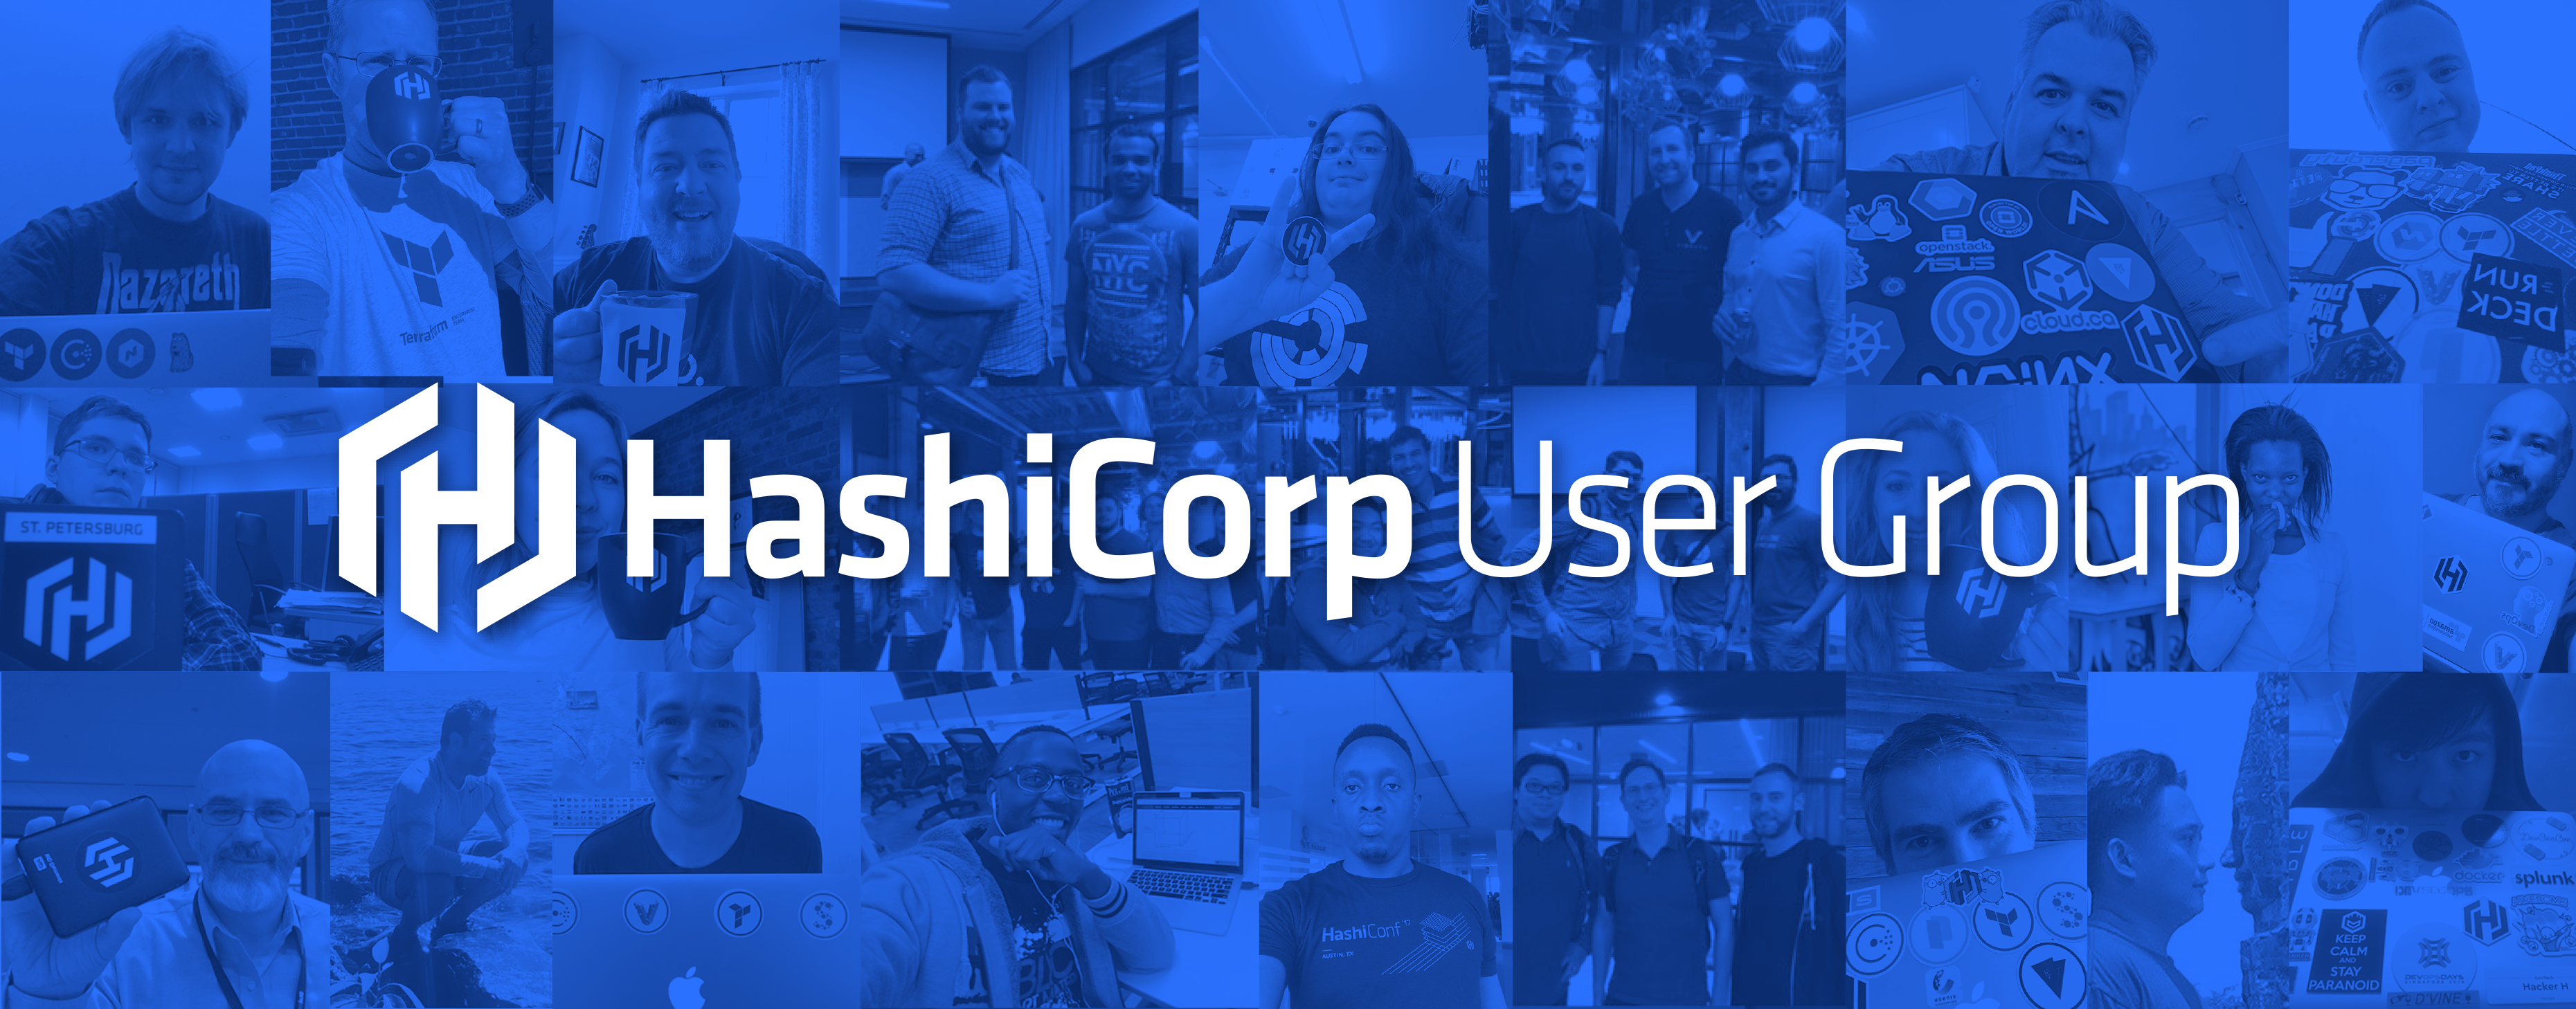 Celebrating Our User Group Community - 10,000 and Growing